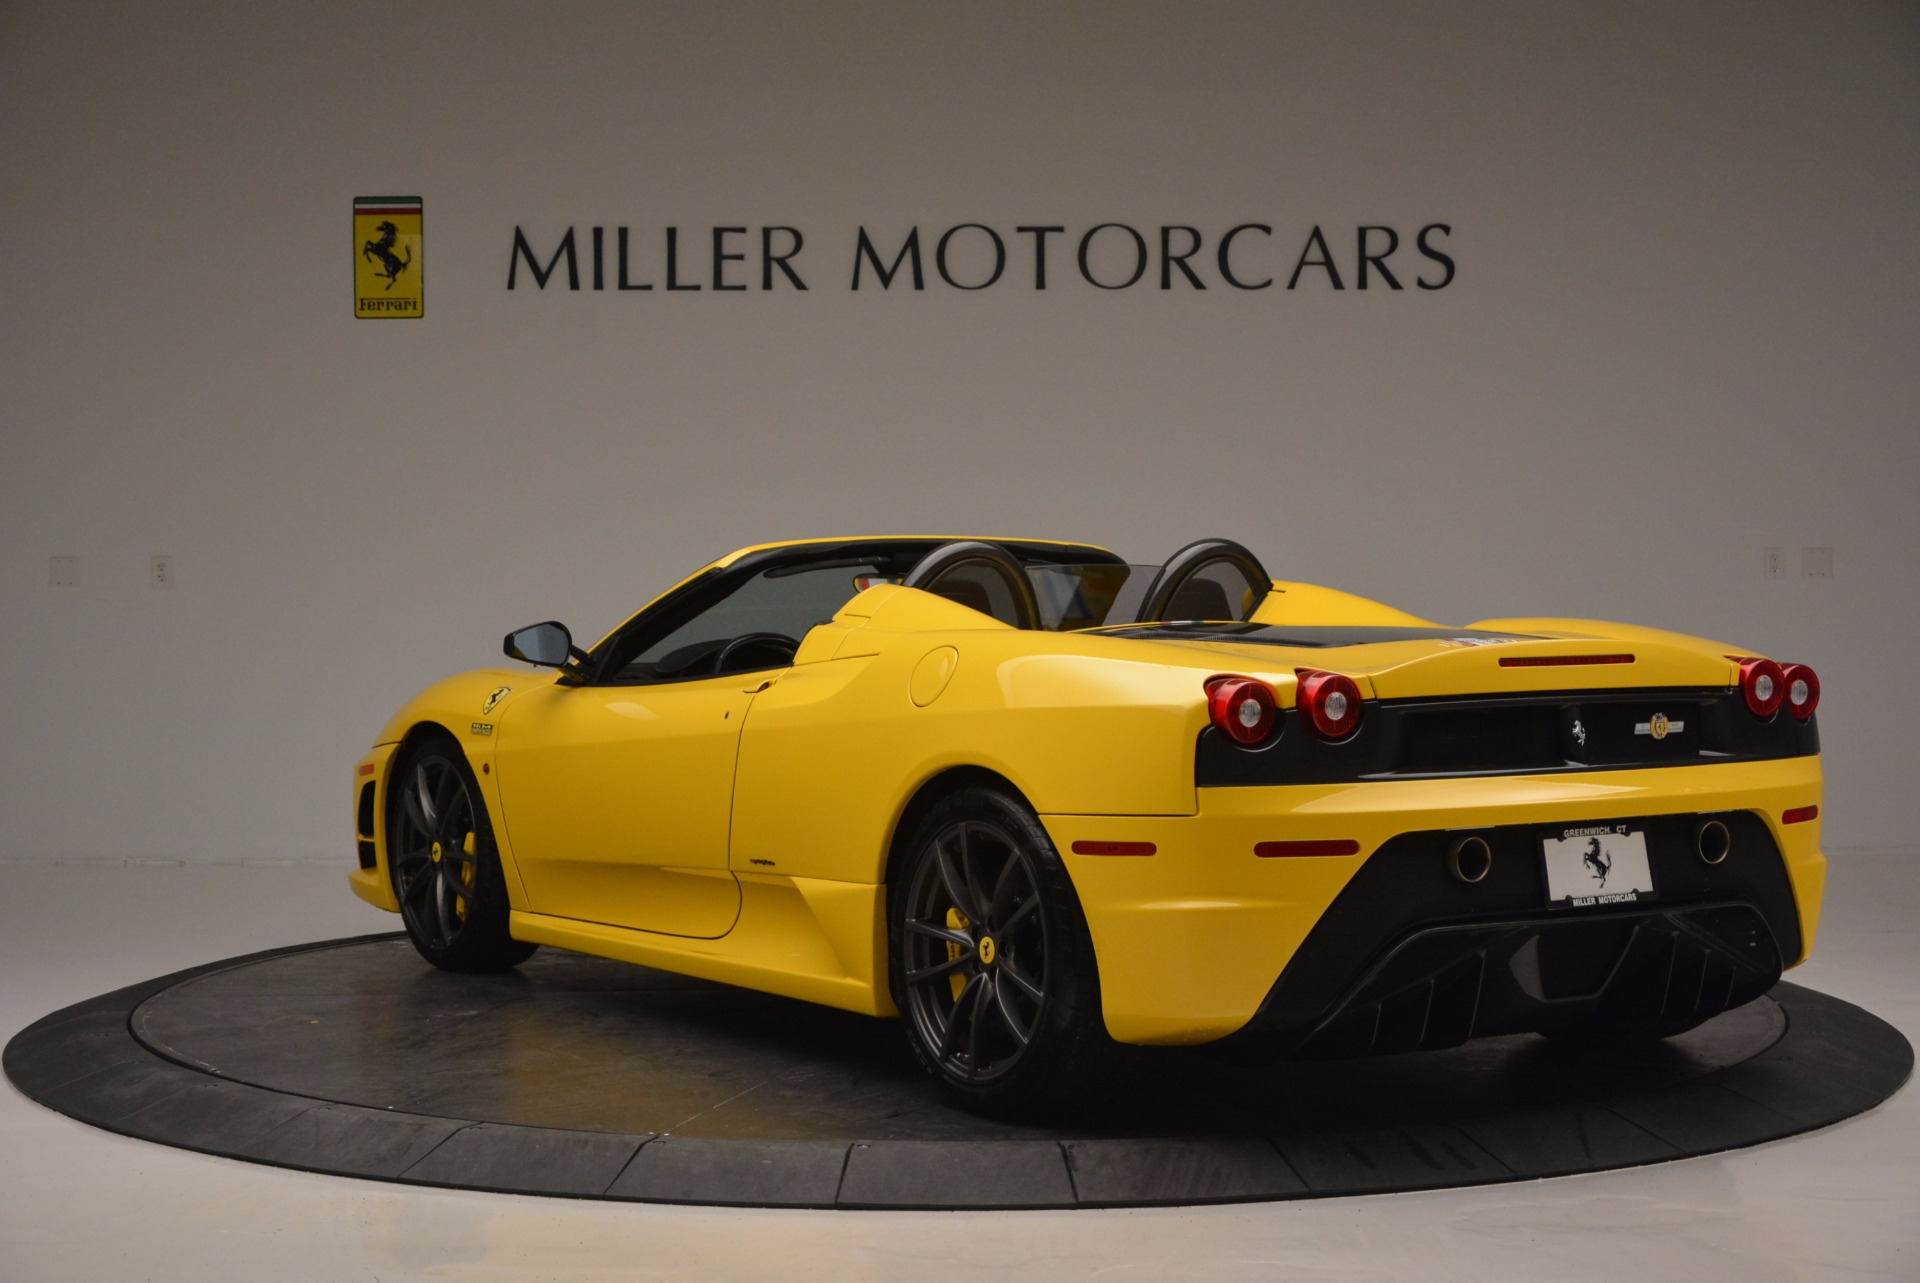 Used 2009 Ferrari F430 Scuderia 16M For Sale In Greenwich, CT 856_p5